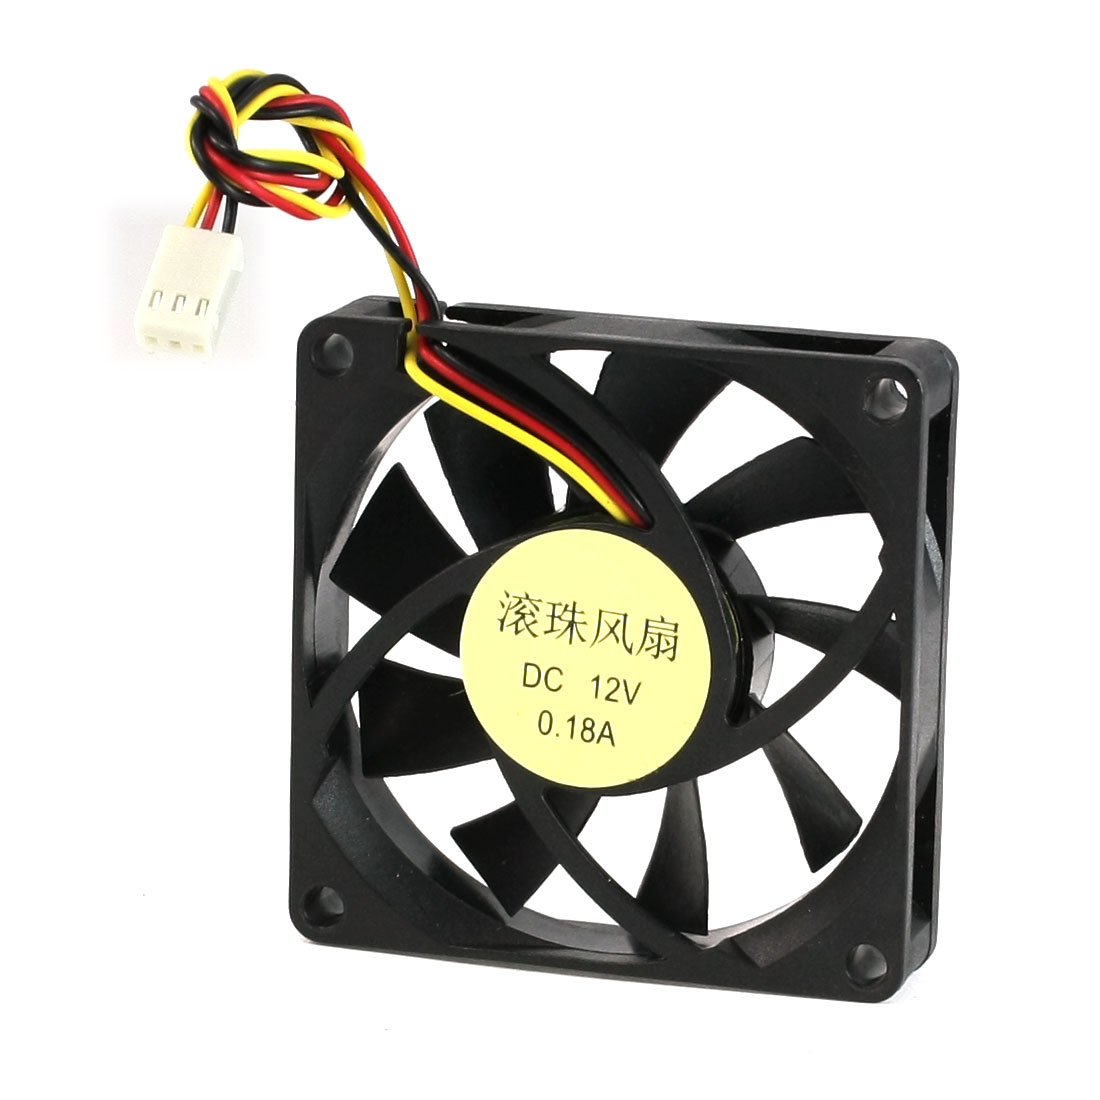 70mm x 15mm DC 12V 0.18A Ball Bearing Motor Personal Computer Case Fan Cooler